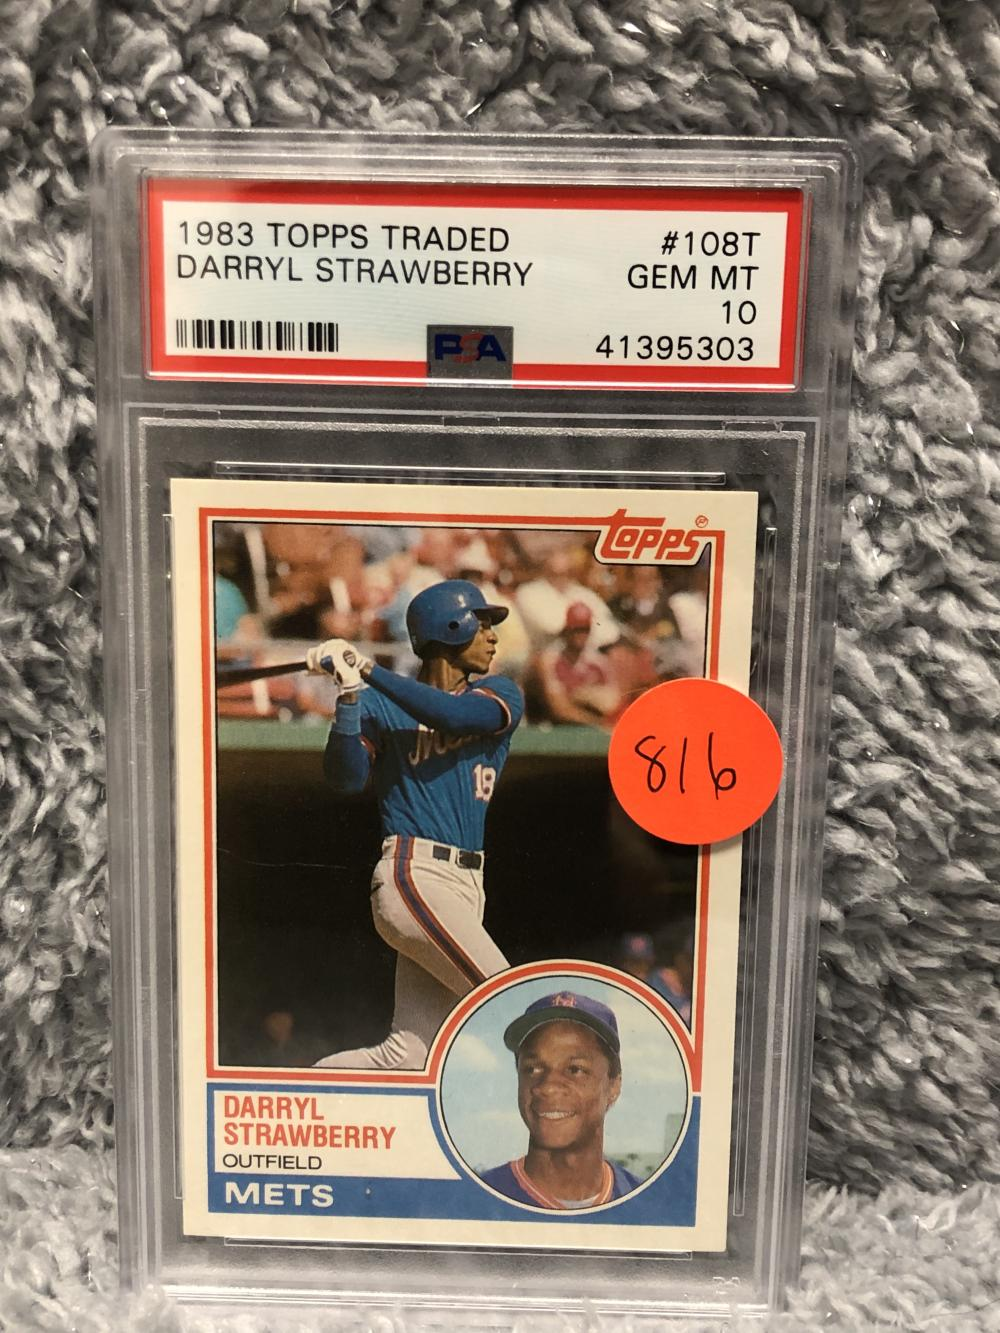 1983 Topps Traded Darryl Strawberry Rookie Card Psa 10 G